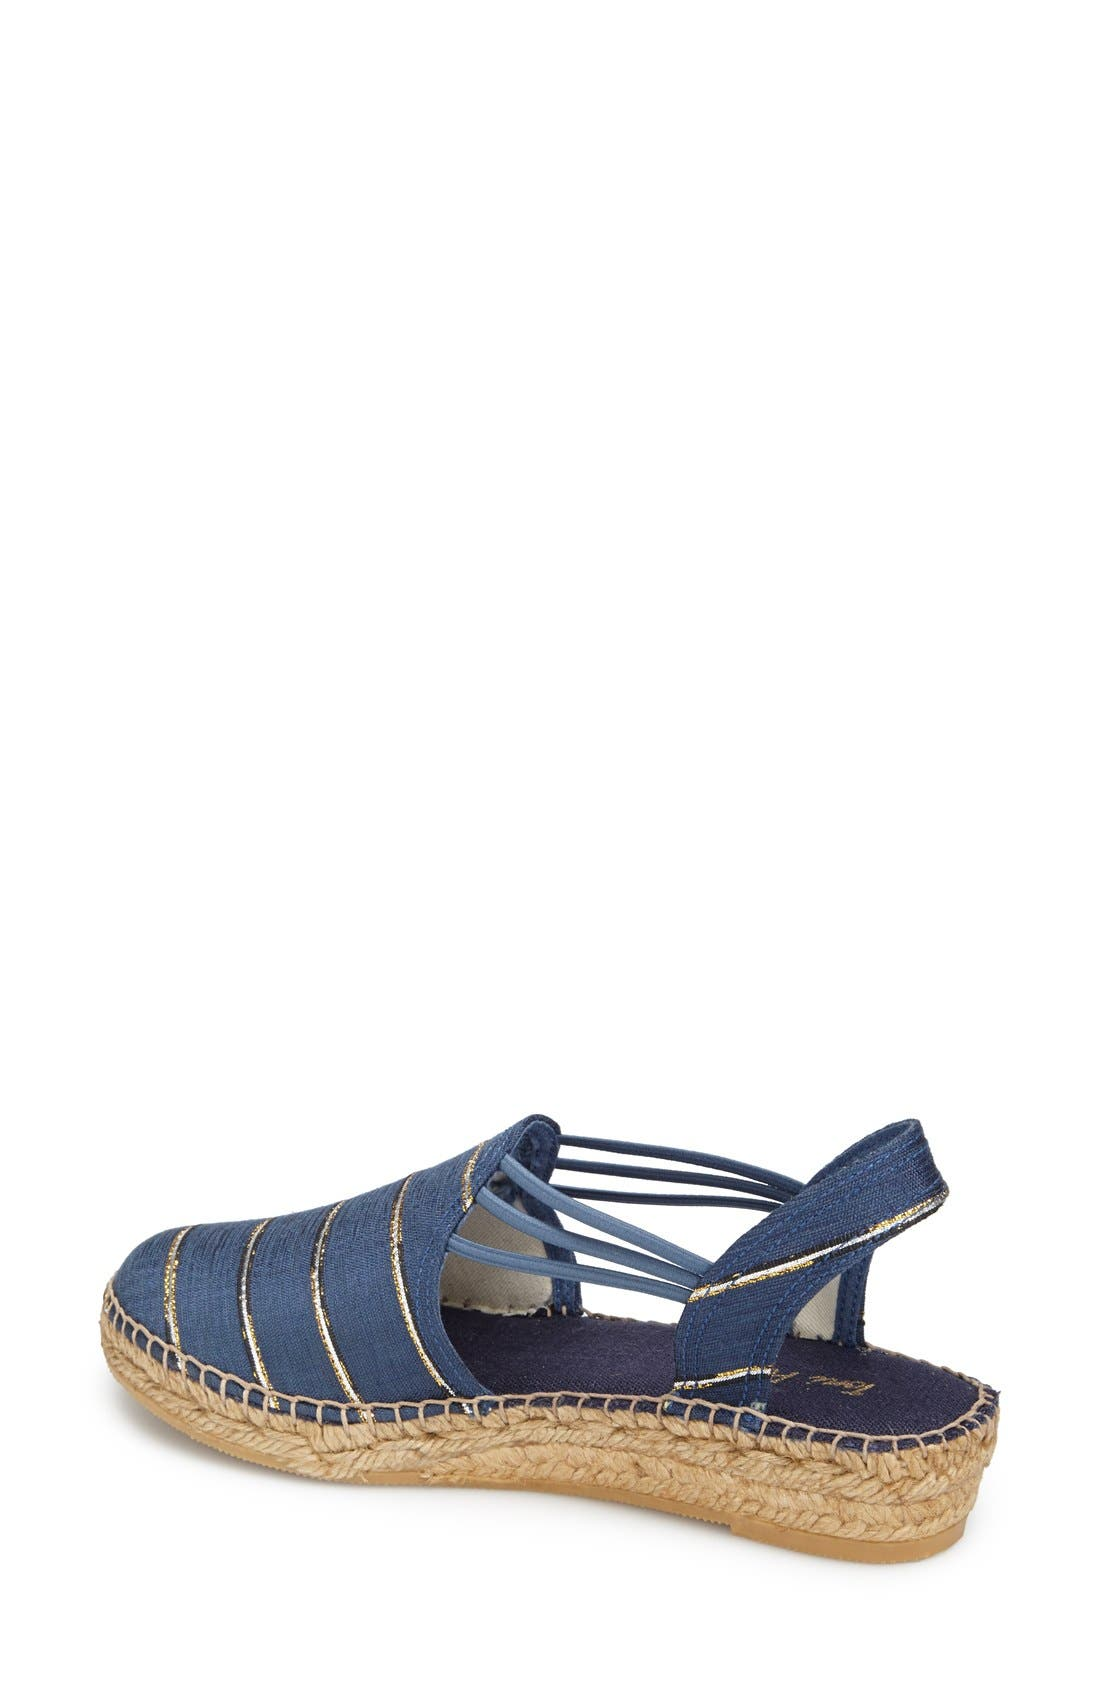 'Nantes' Silk Stripe Sandal,                             Alternate thumbnail 2, color,                             Stripe Navy